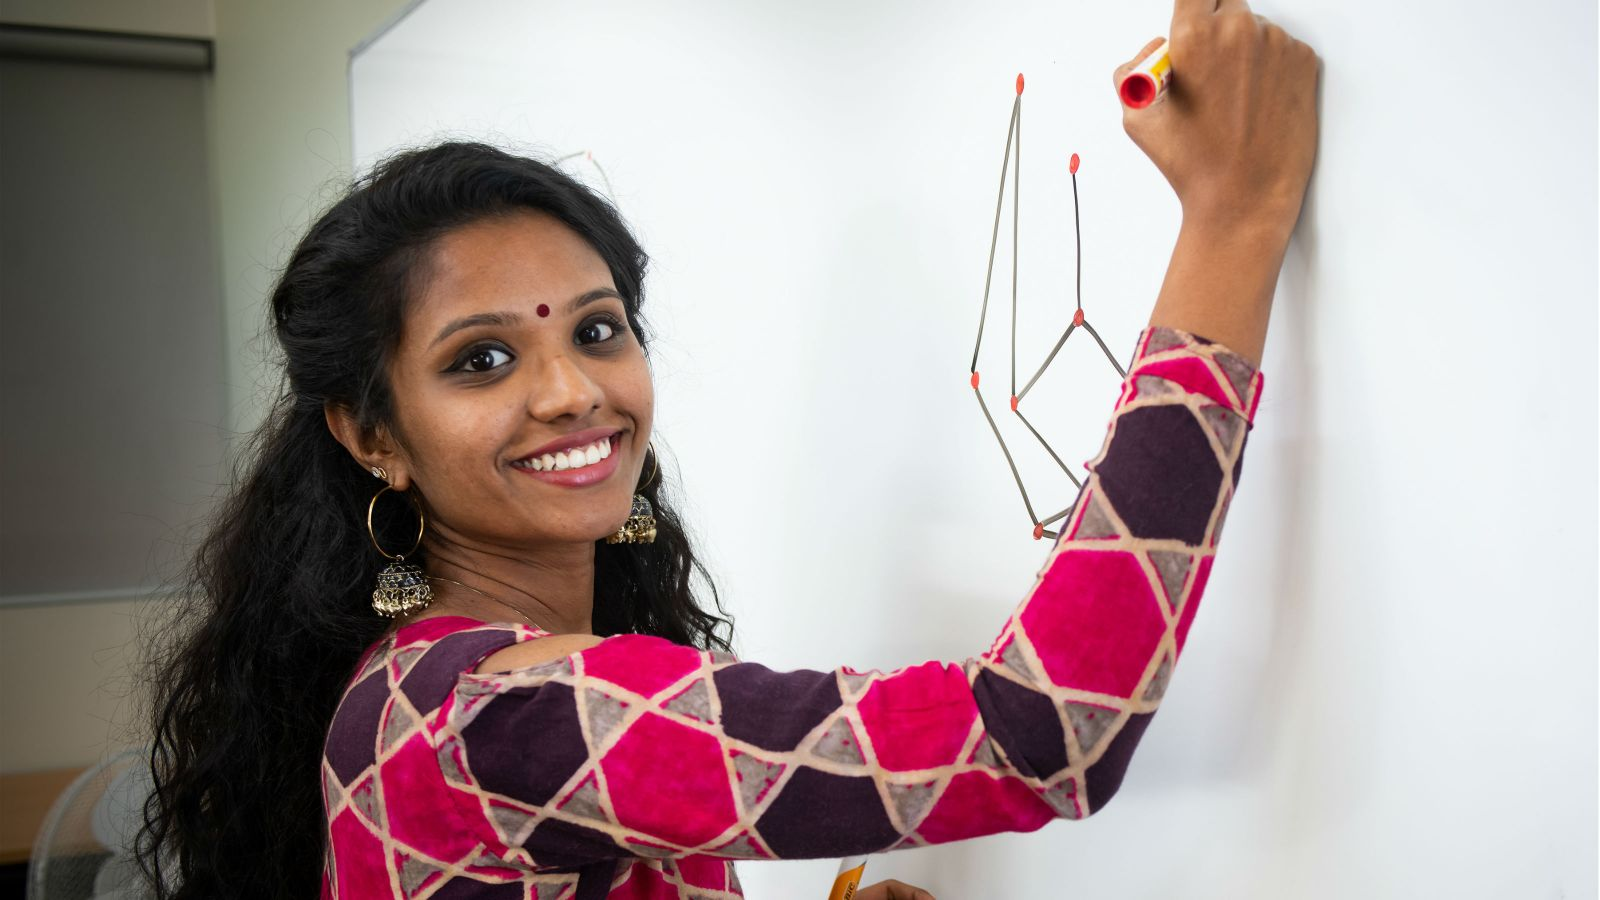 Meenu draws symbols on a white board and looks towards the camera with a smile.